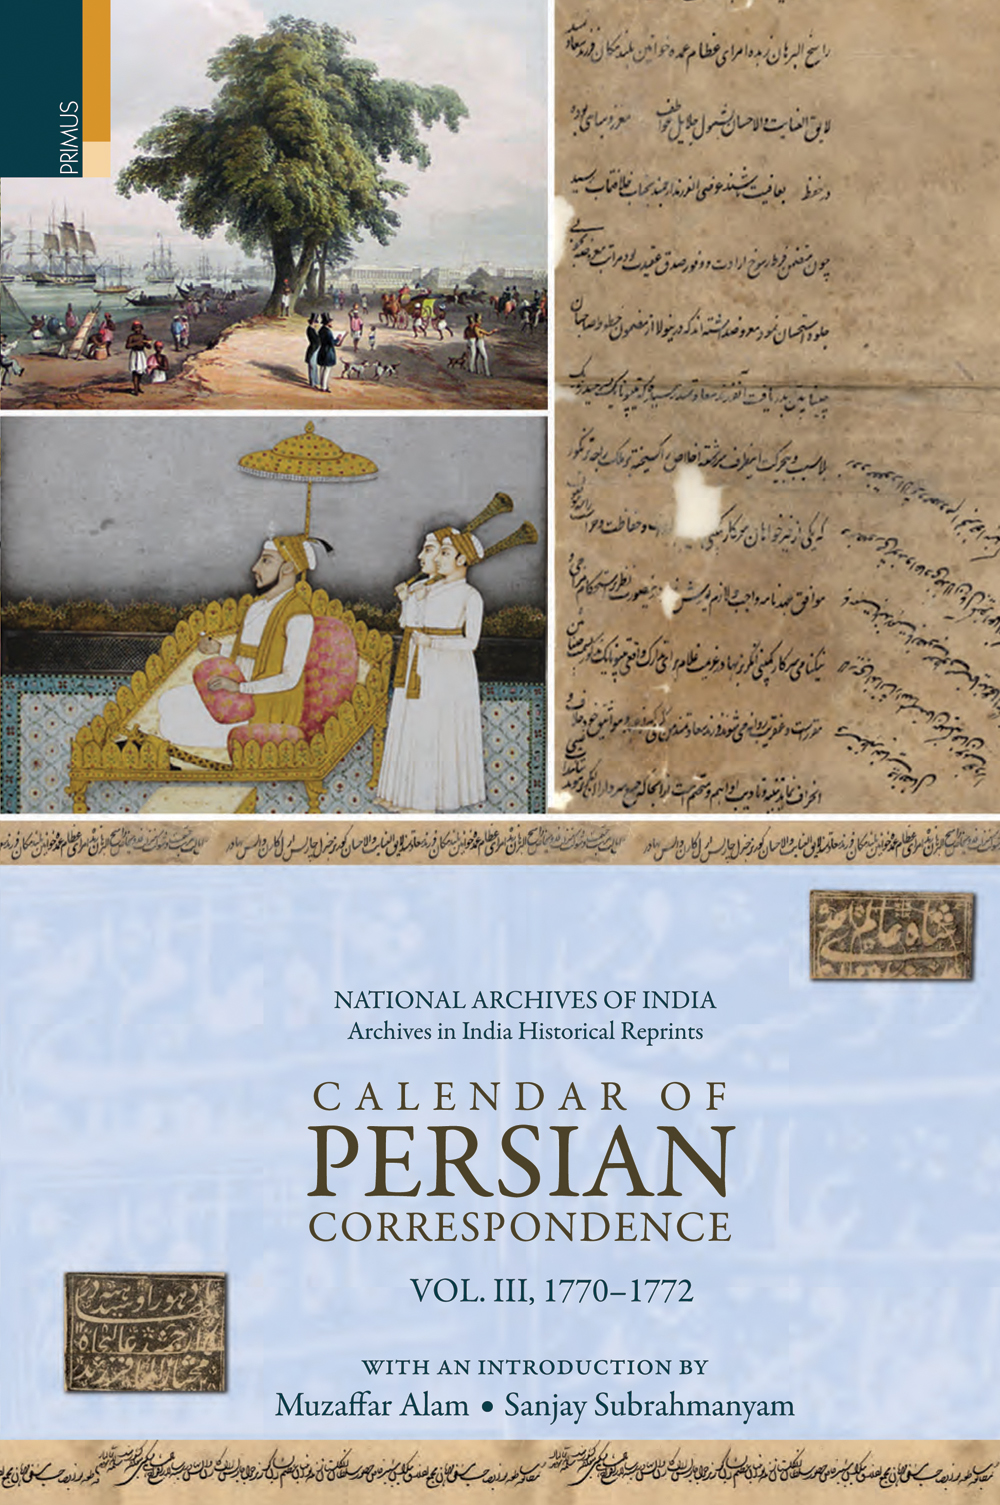 Calendar of Persian Correspondence With and Introduction by Muzaffar Alam and Sanjay Subrahmanyam, Volume III: 1770-1772